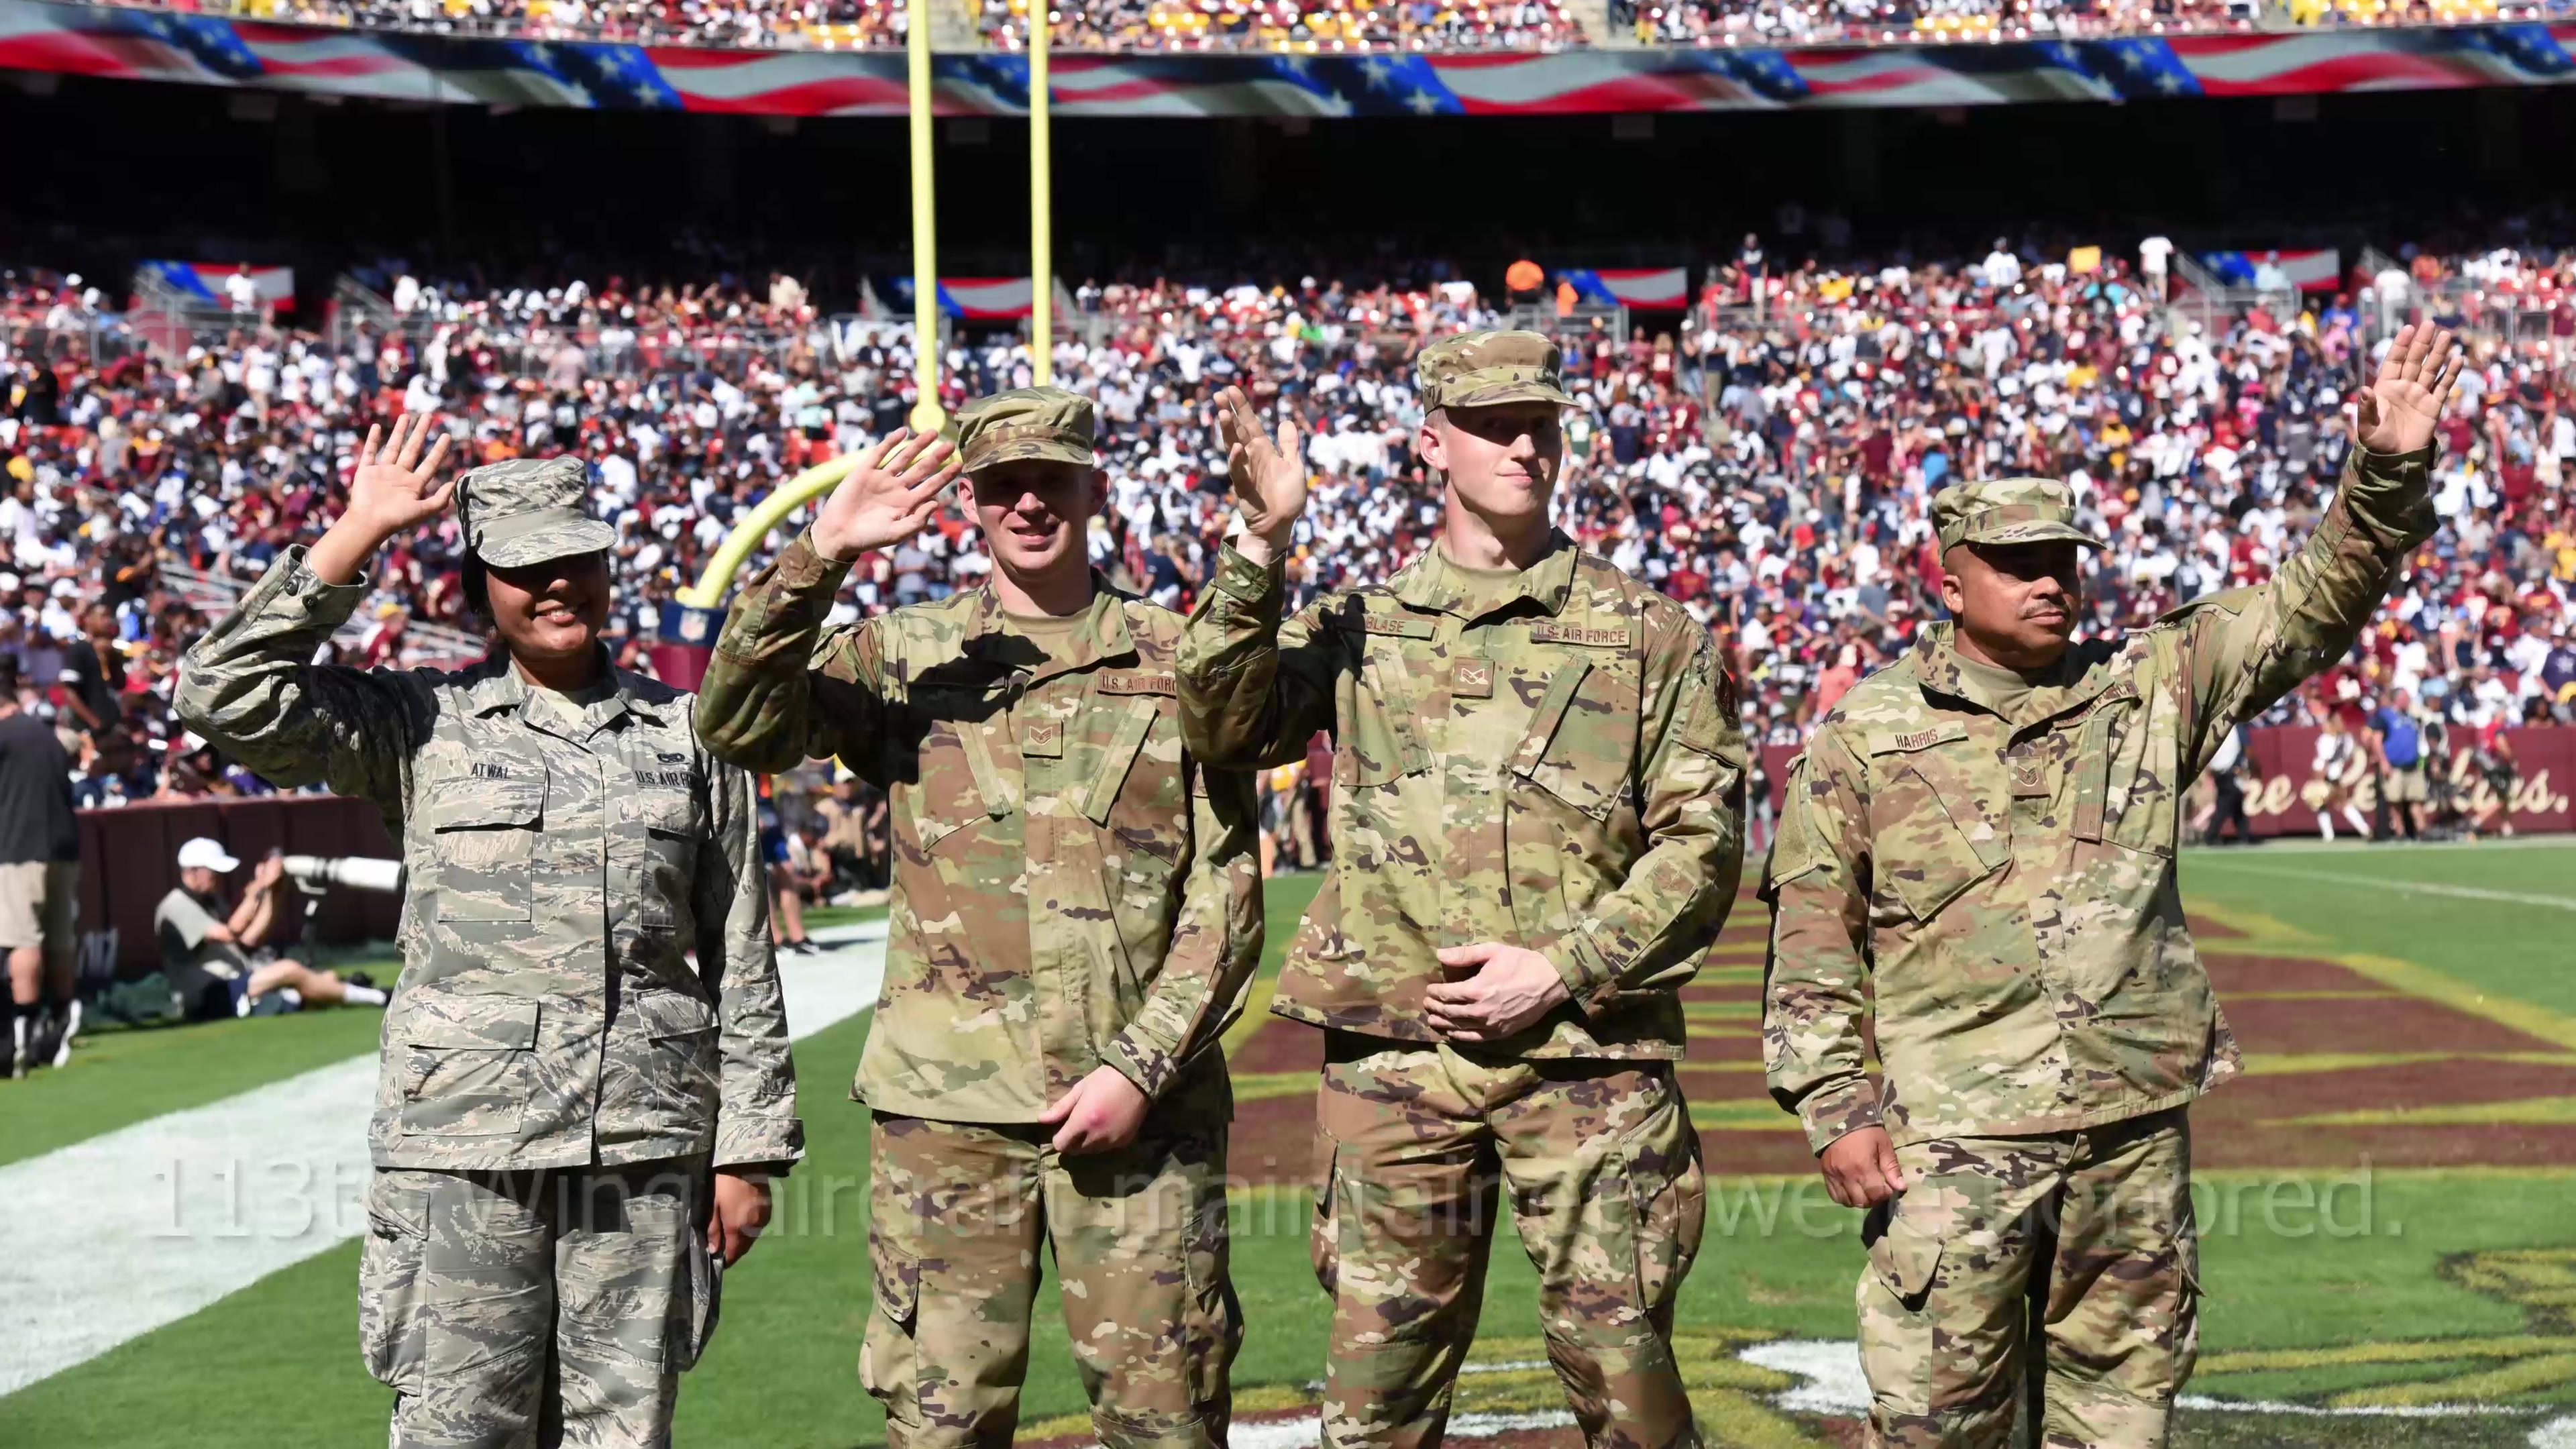 Members from the 113th Wing were recognized by the Washington Redskins honoring the United States Air Force's upcoming 72nd birthday during their game versus the Dallas Cowboys, September 15, at FedEx Field.